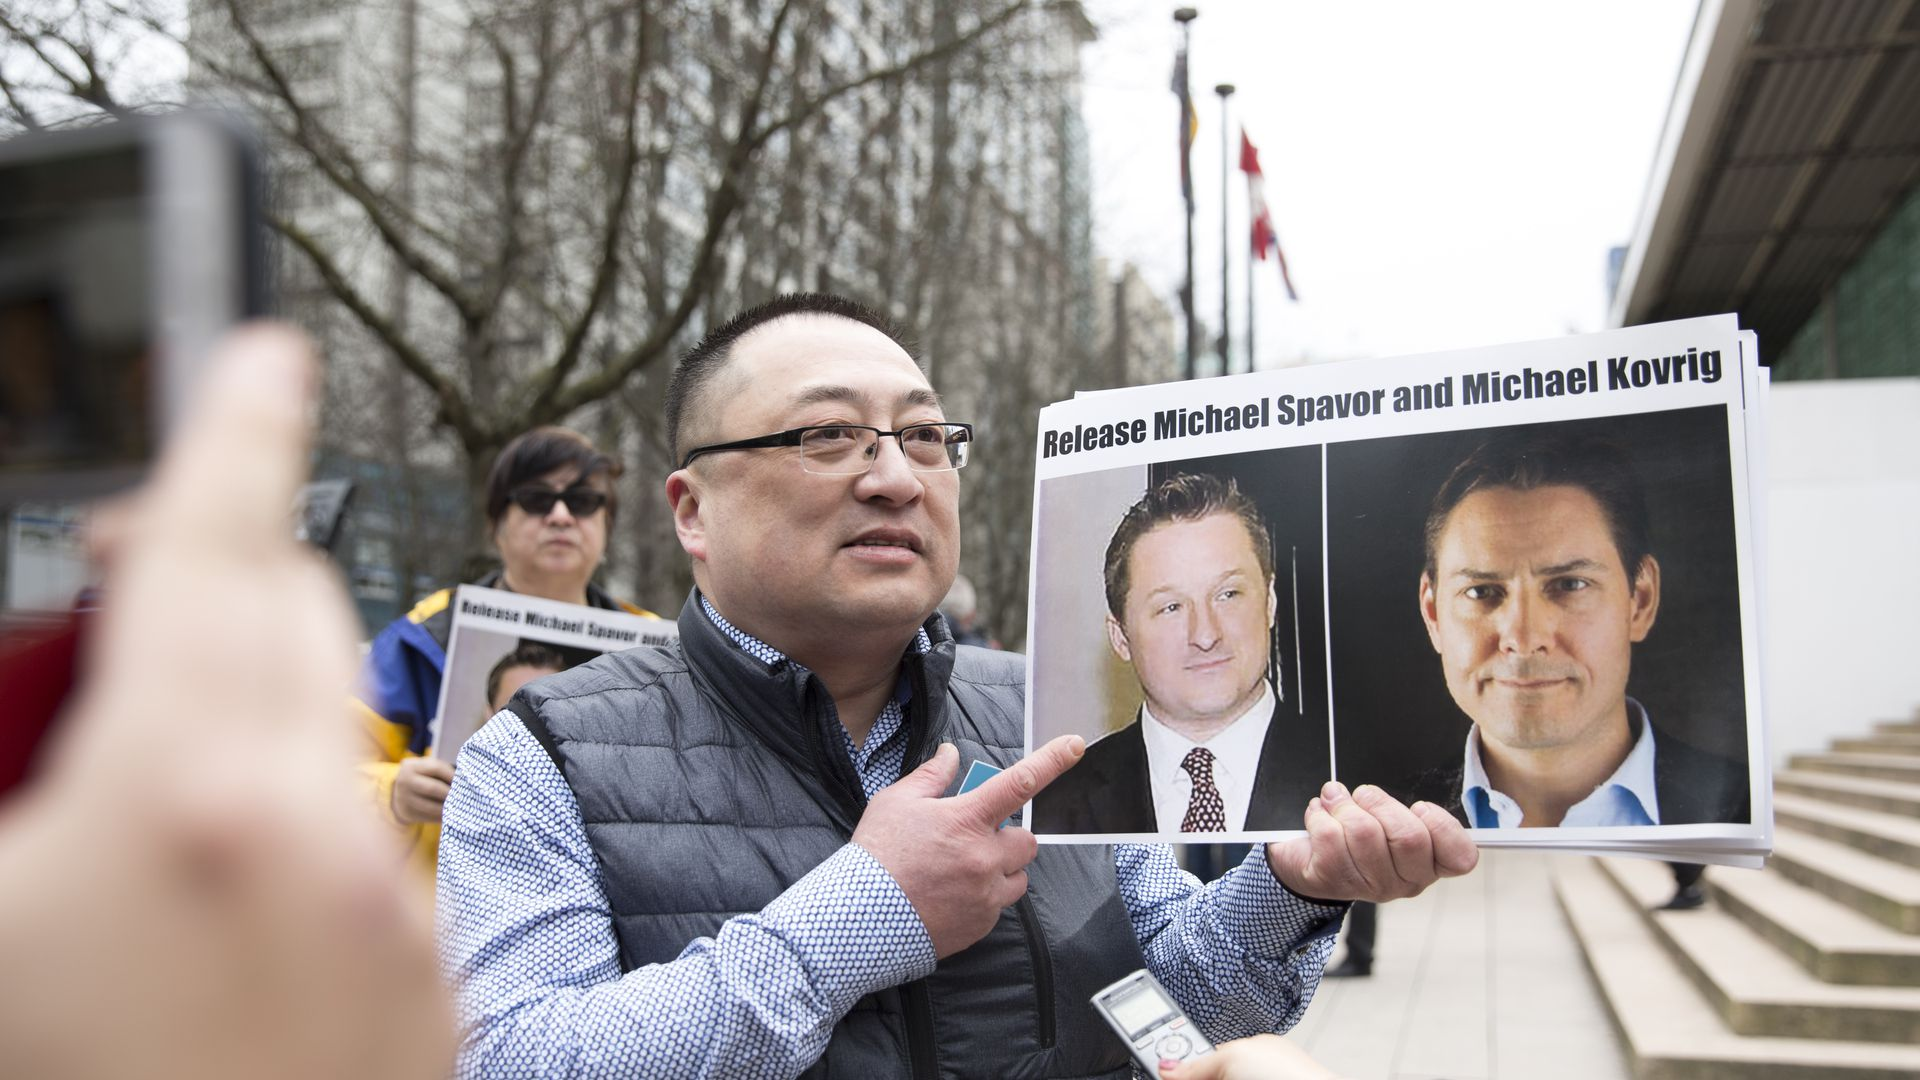 Louis Huang of Vancouver Freedom and Democracy for China holds photos of Canadians Michael Spavor and Michael Kovrig.